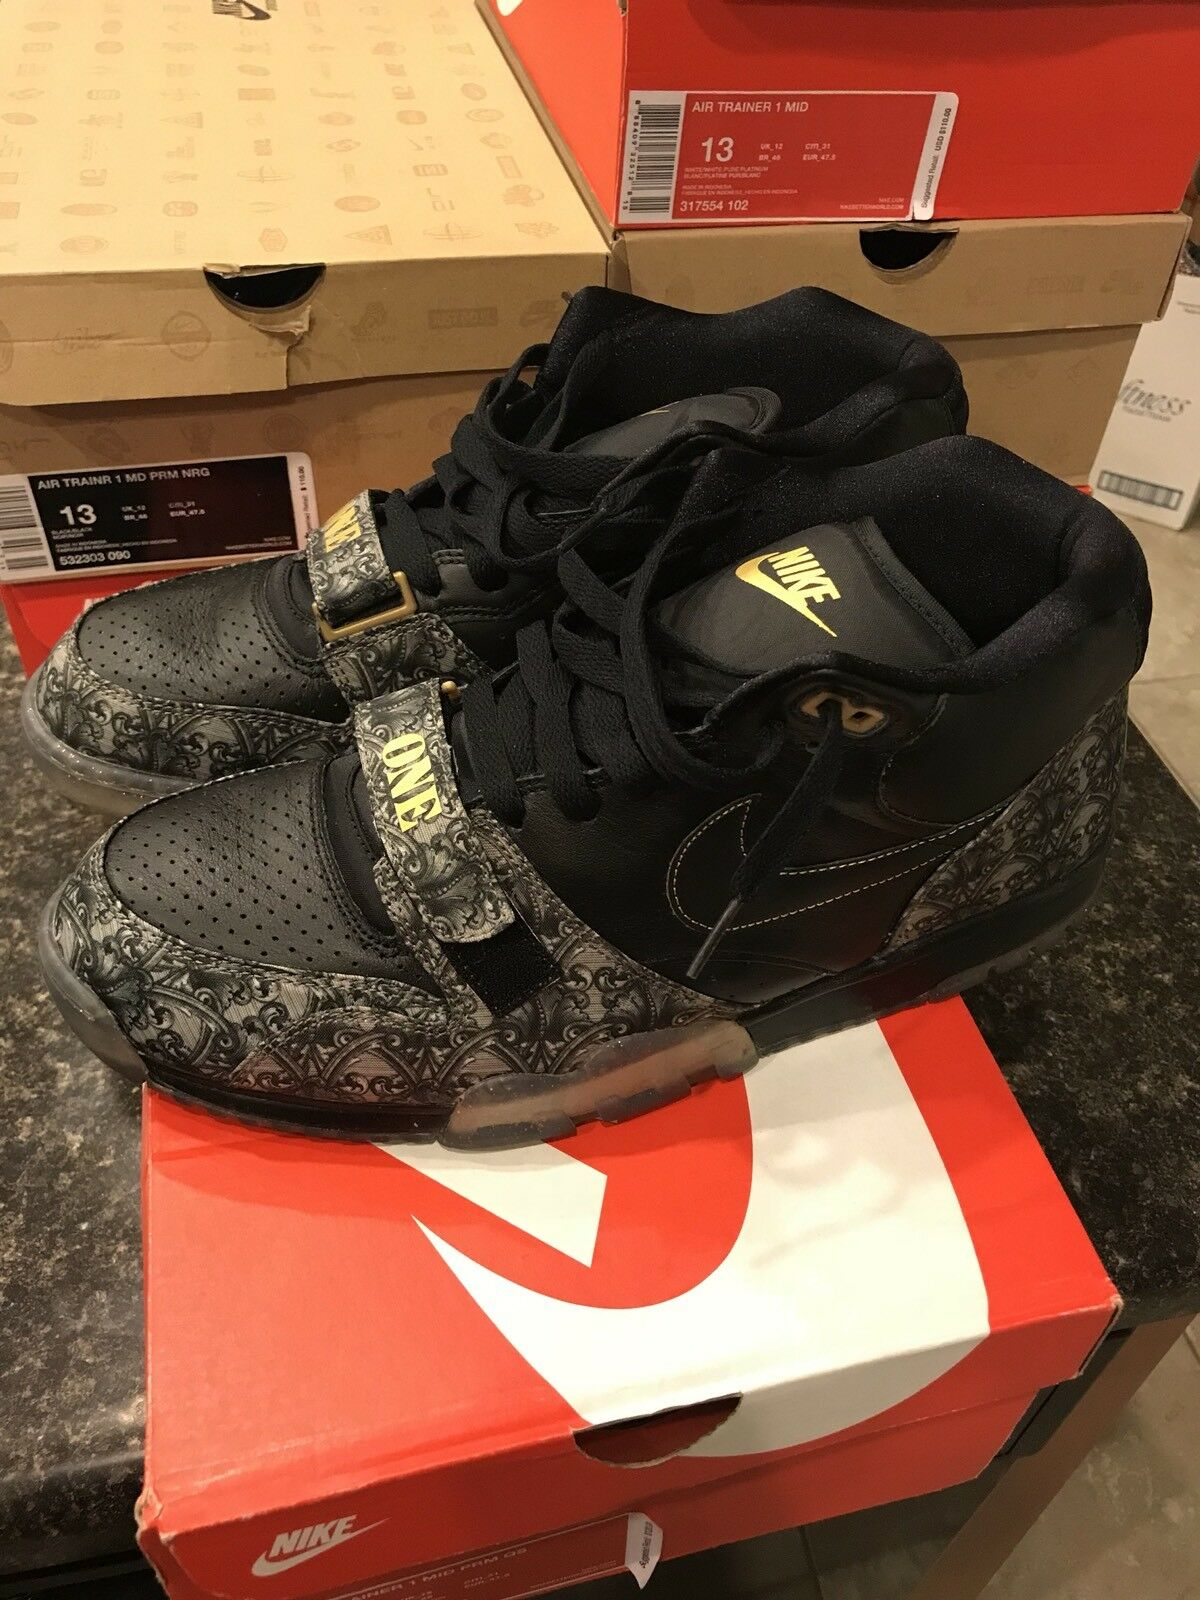 100% Authentic Worn Nike AIR TRAINER 1 MID Paid In Full Money Sz 13